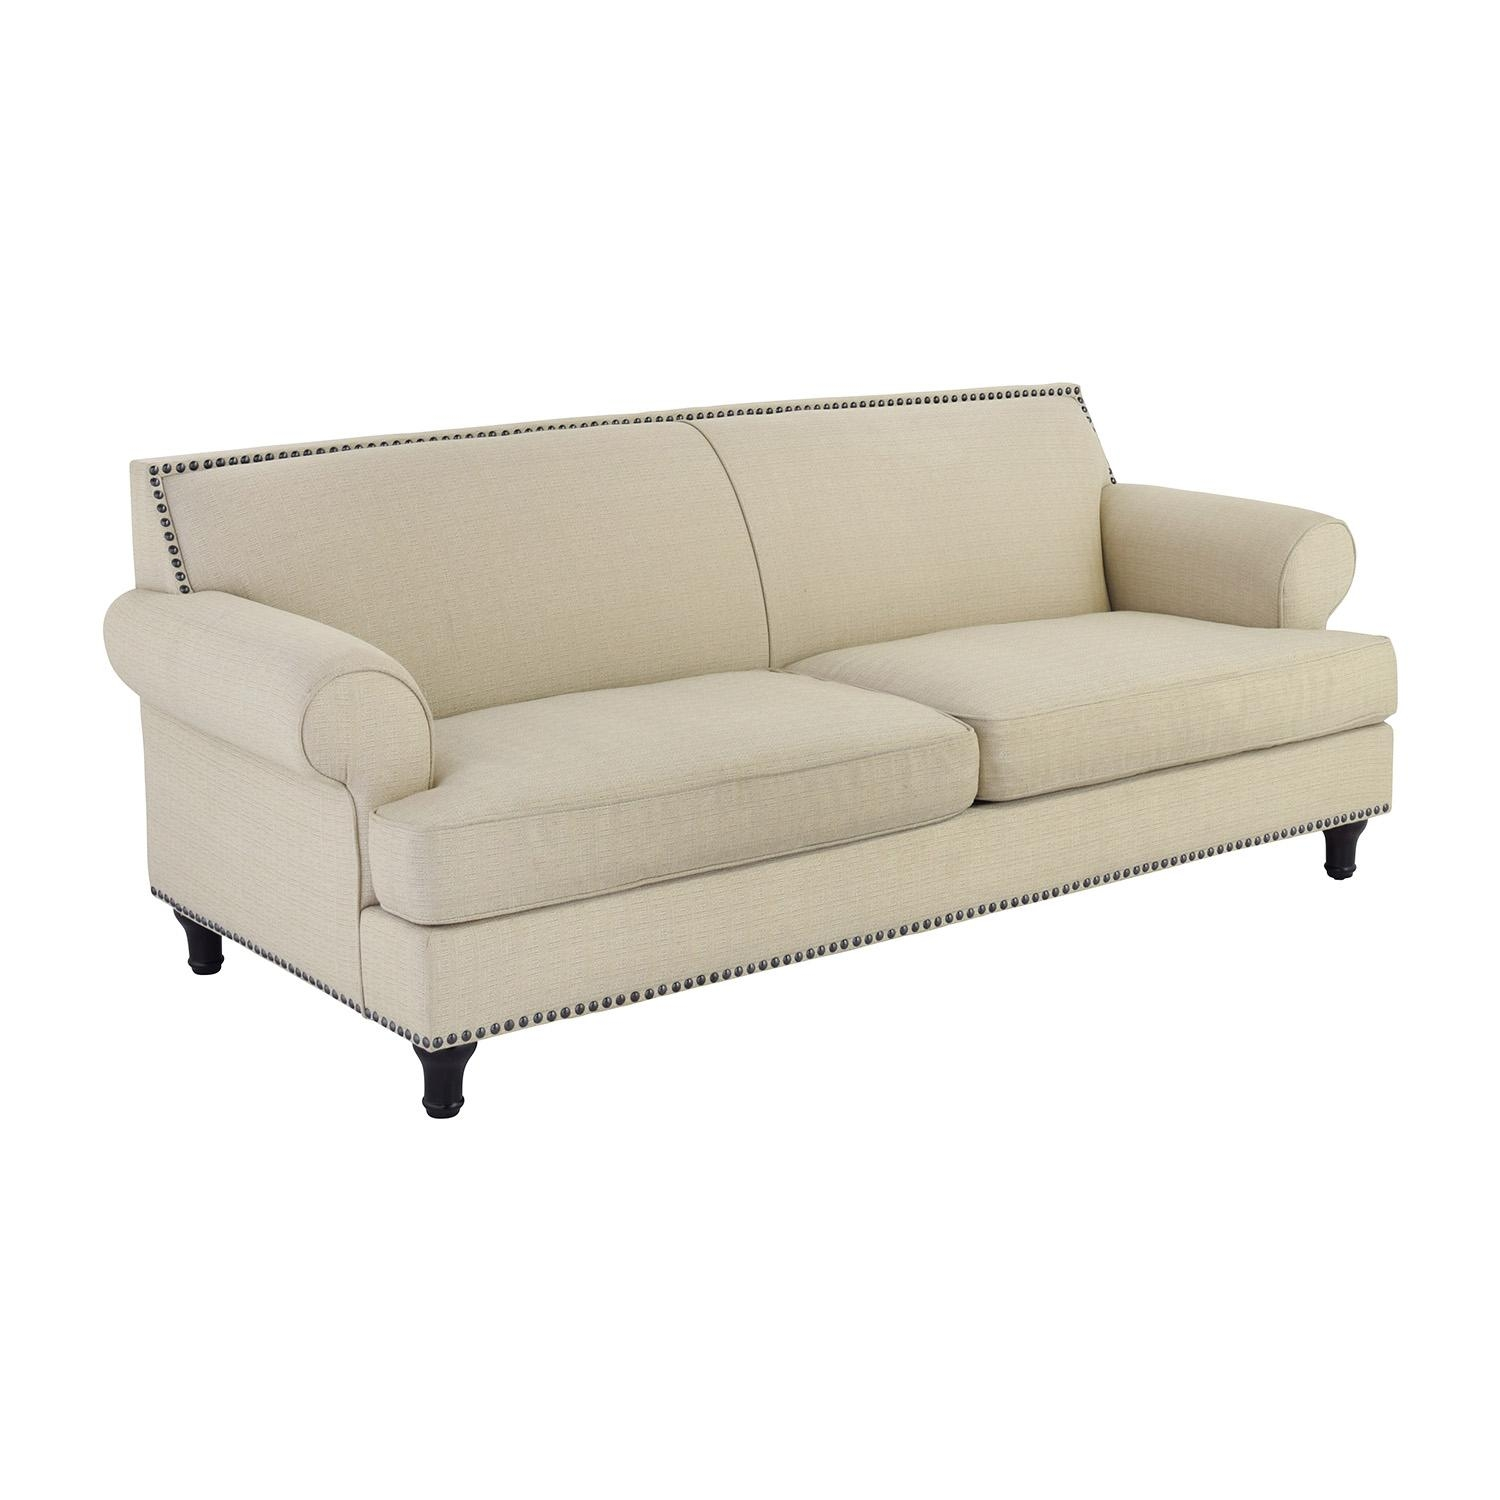 48% Off – Pier 1 Pier 1 Carmen Tan Couch With Studs / Sofas Within Pier 1 Sofas (Image 3 of 20)